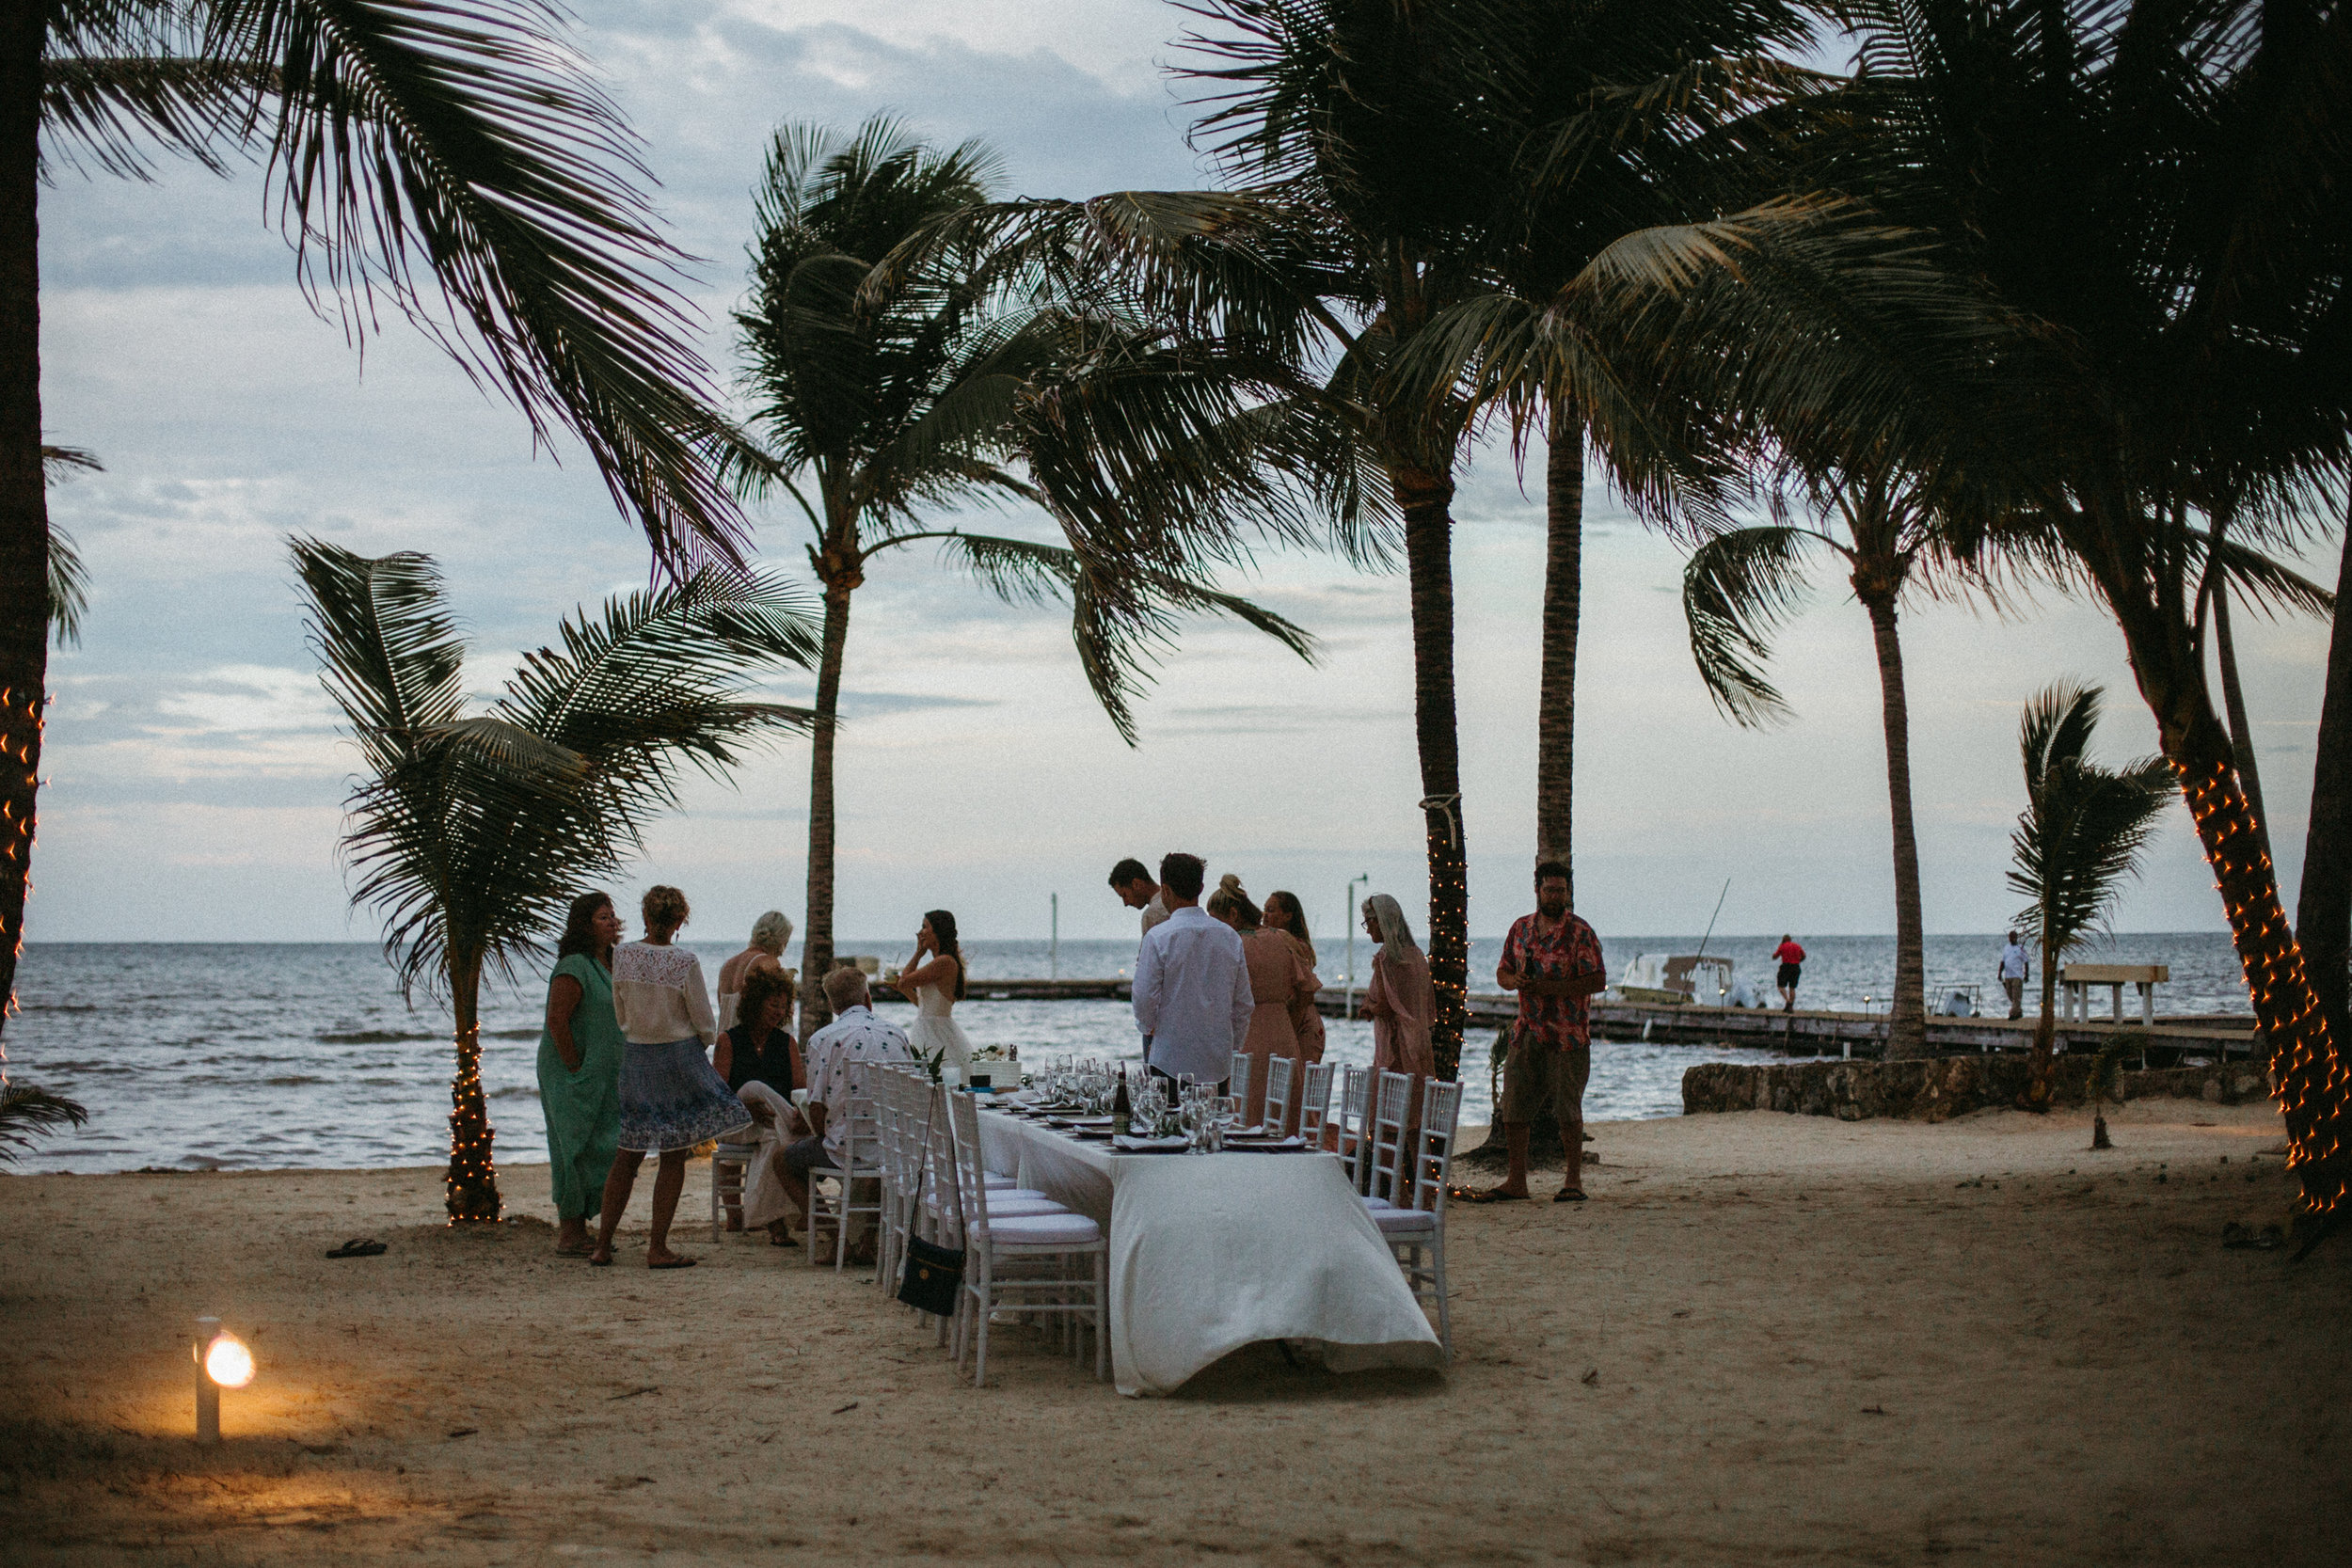 san-pescador-belize-wedding-christinemariephoto-j-k-120.jpg